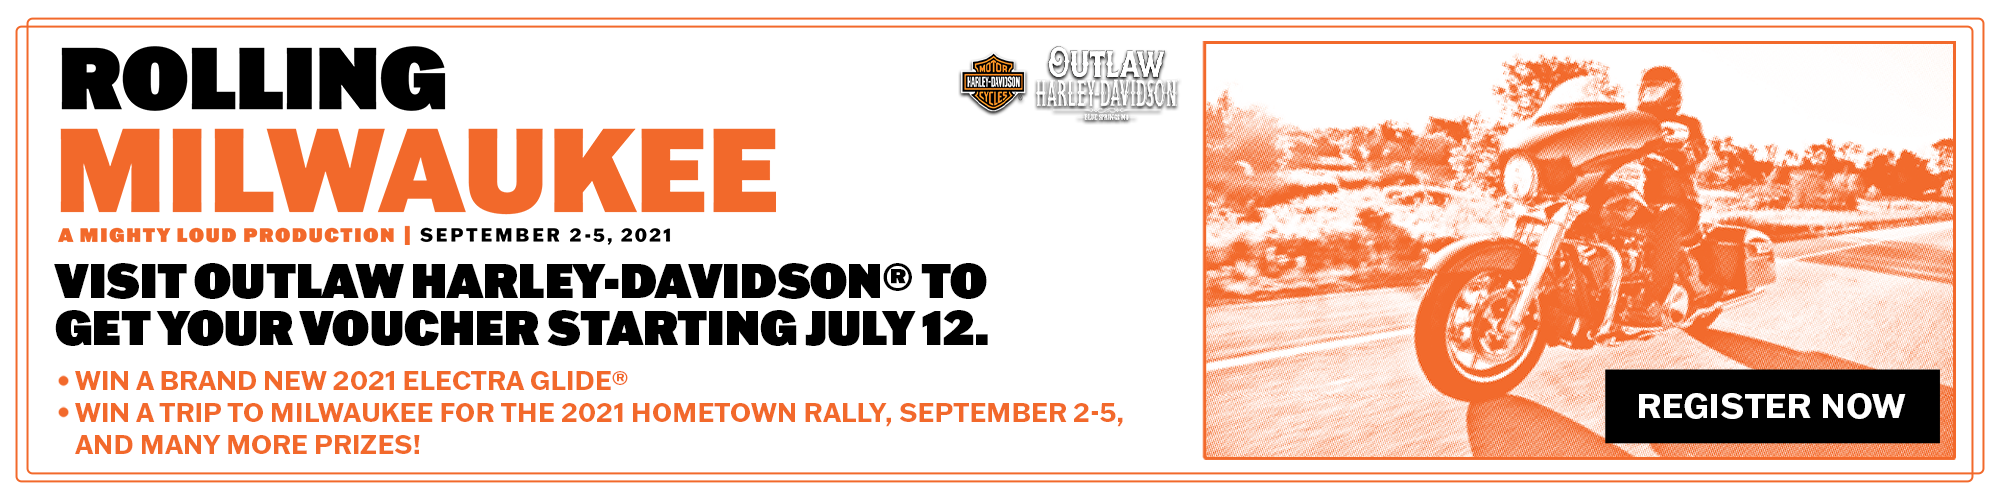 Outlaw Harley-Davidson Rolling Milwaukee